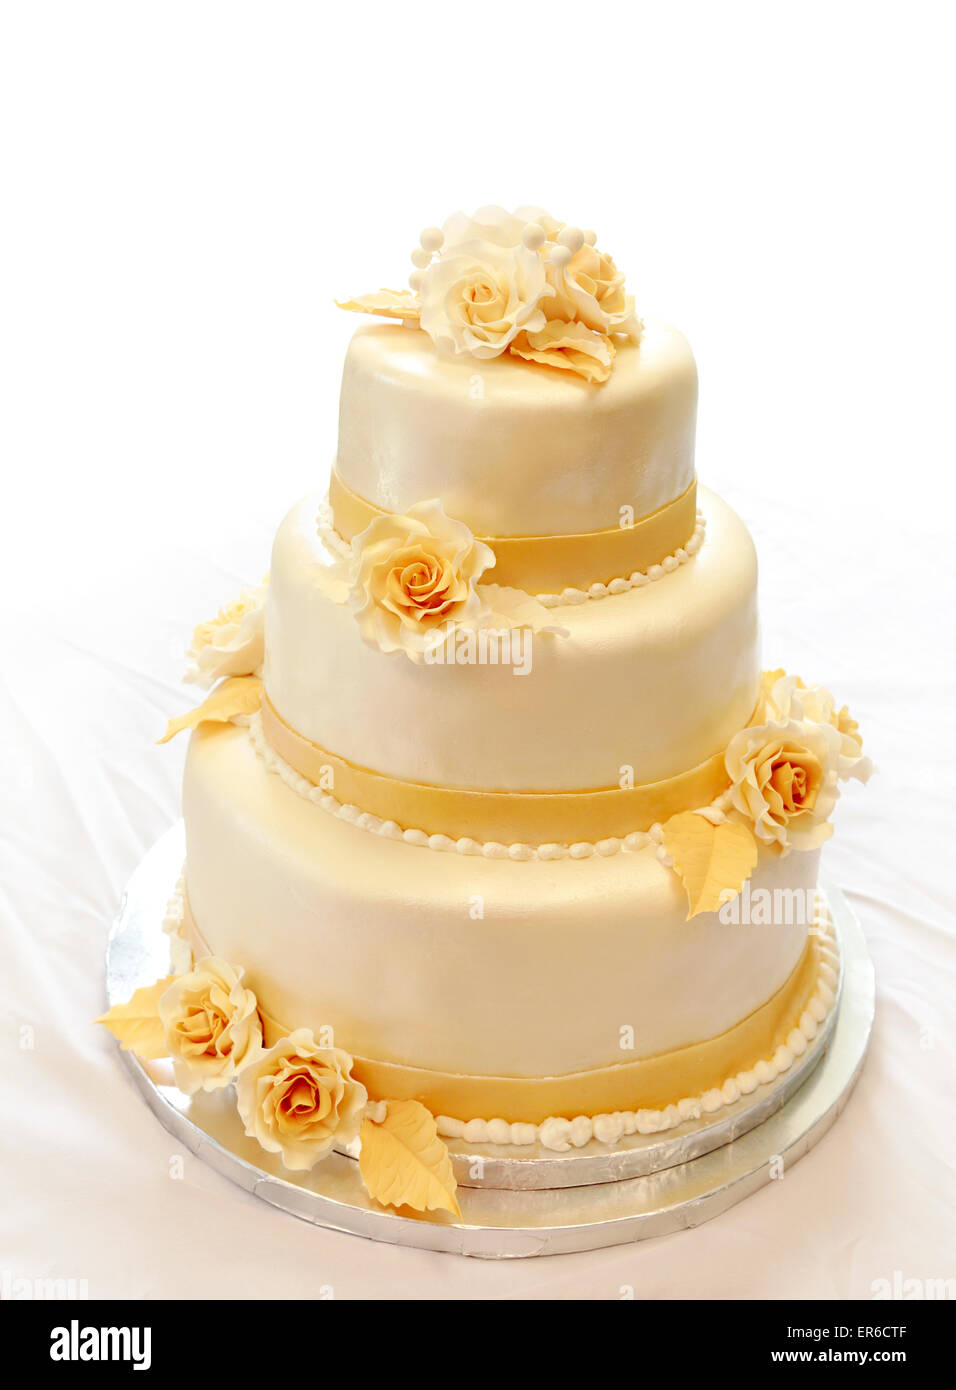 Wedding Cake 3 Tiers Covered In Ivory Fondant Sprayed With Pearl Spray And Yellow Gold Sugar Roses